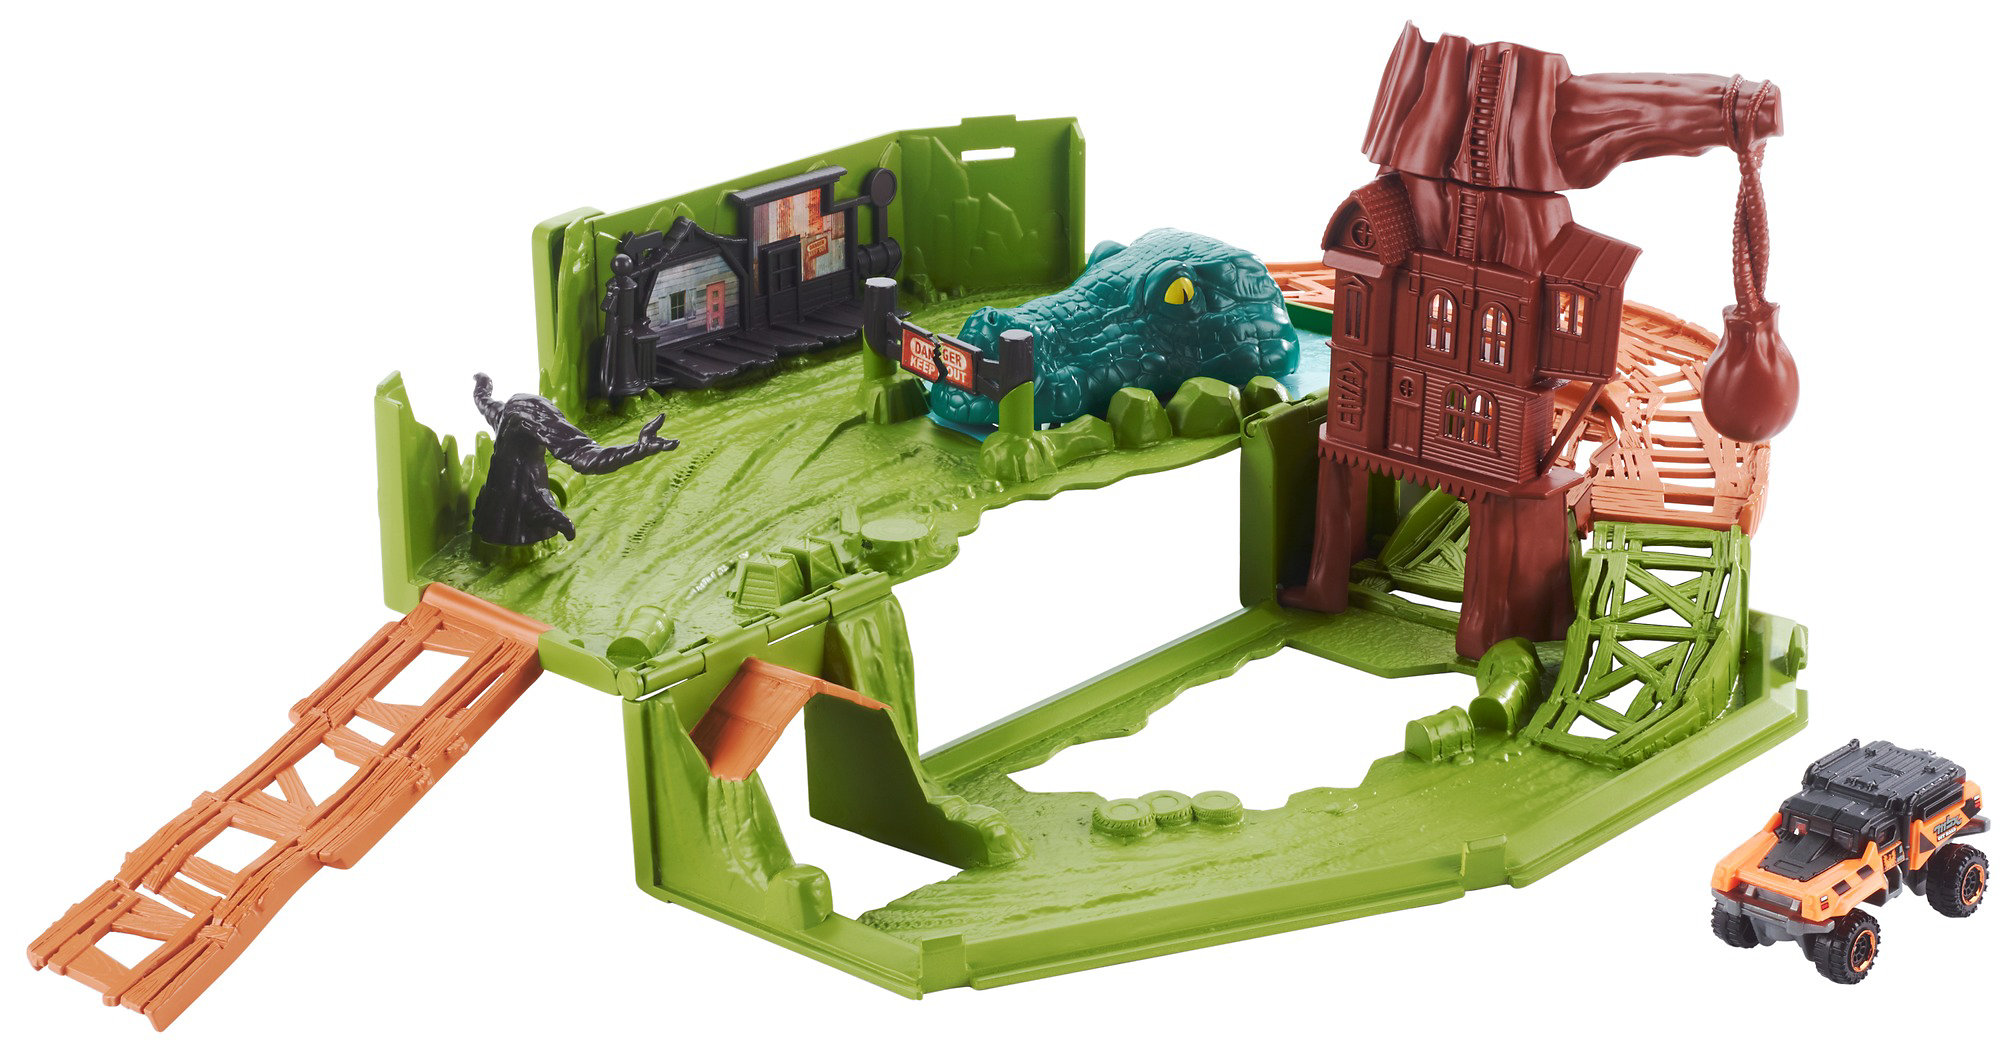 Matchbox Swamp Chomper Play Set by Mattel